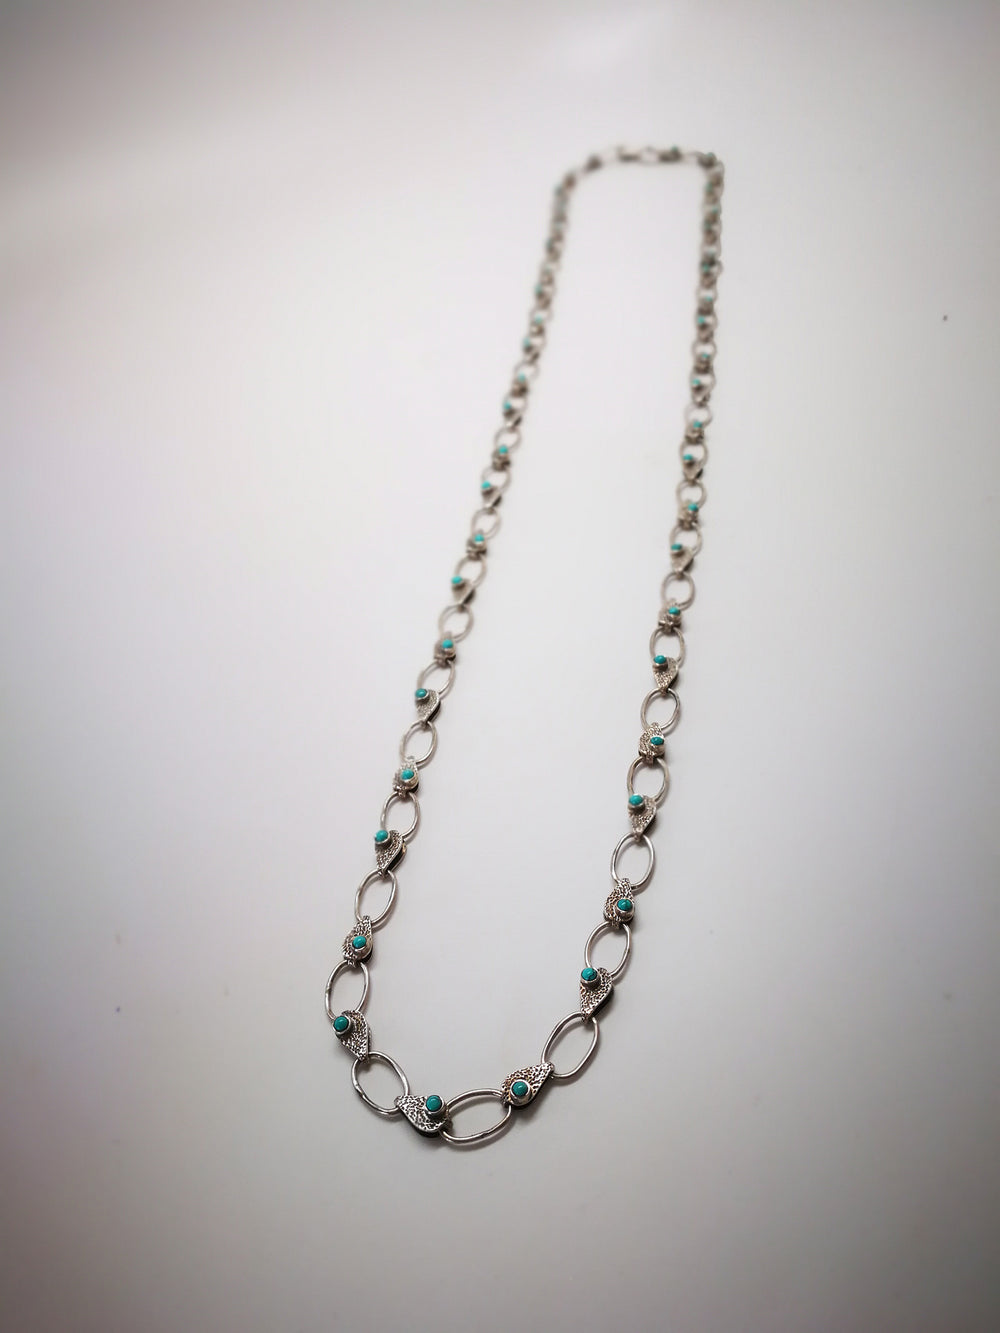 Silver Chain Necklace with Turquoise